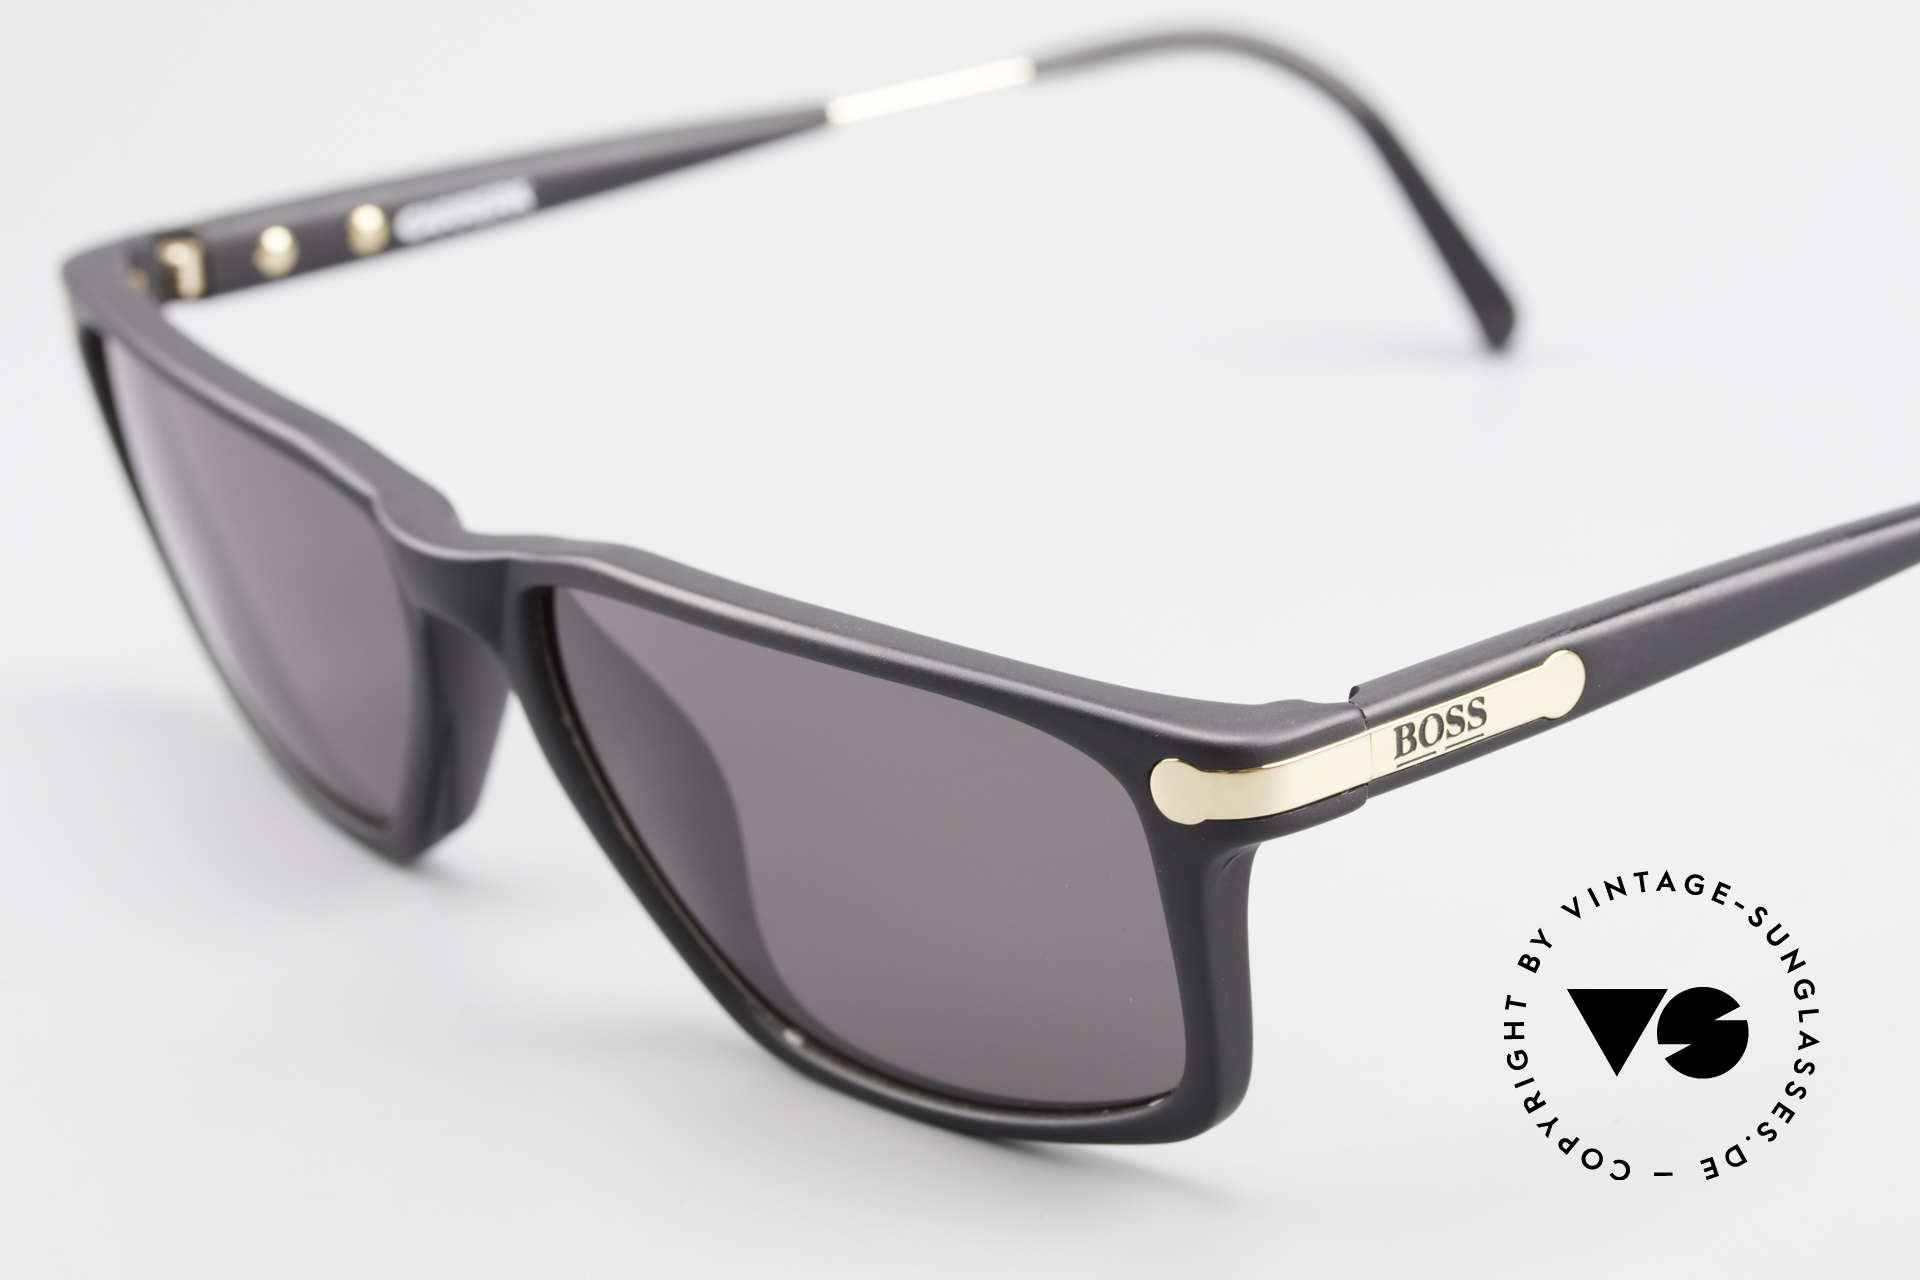 BOSS 5174 Square-Cut Vintage Sunglasses, classic, timeless frame color in matt black and gold, Made for Men